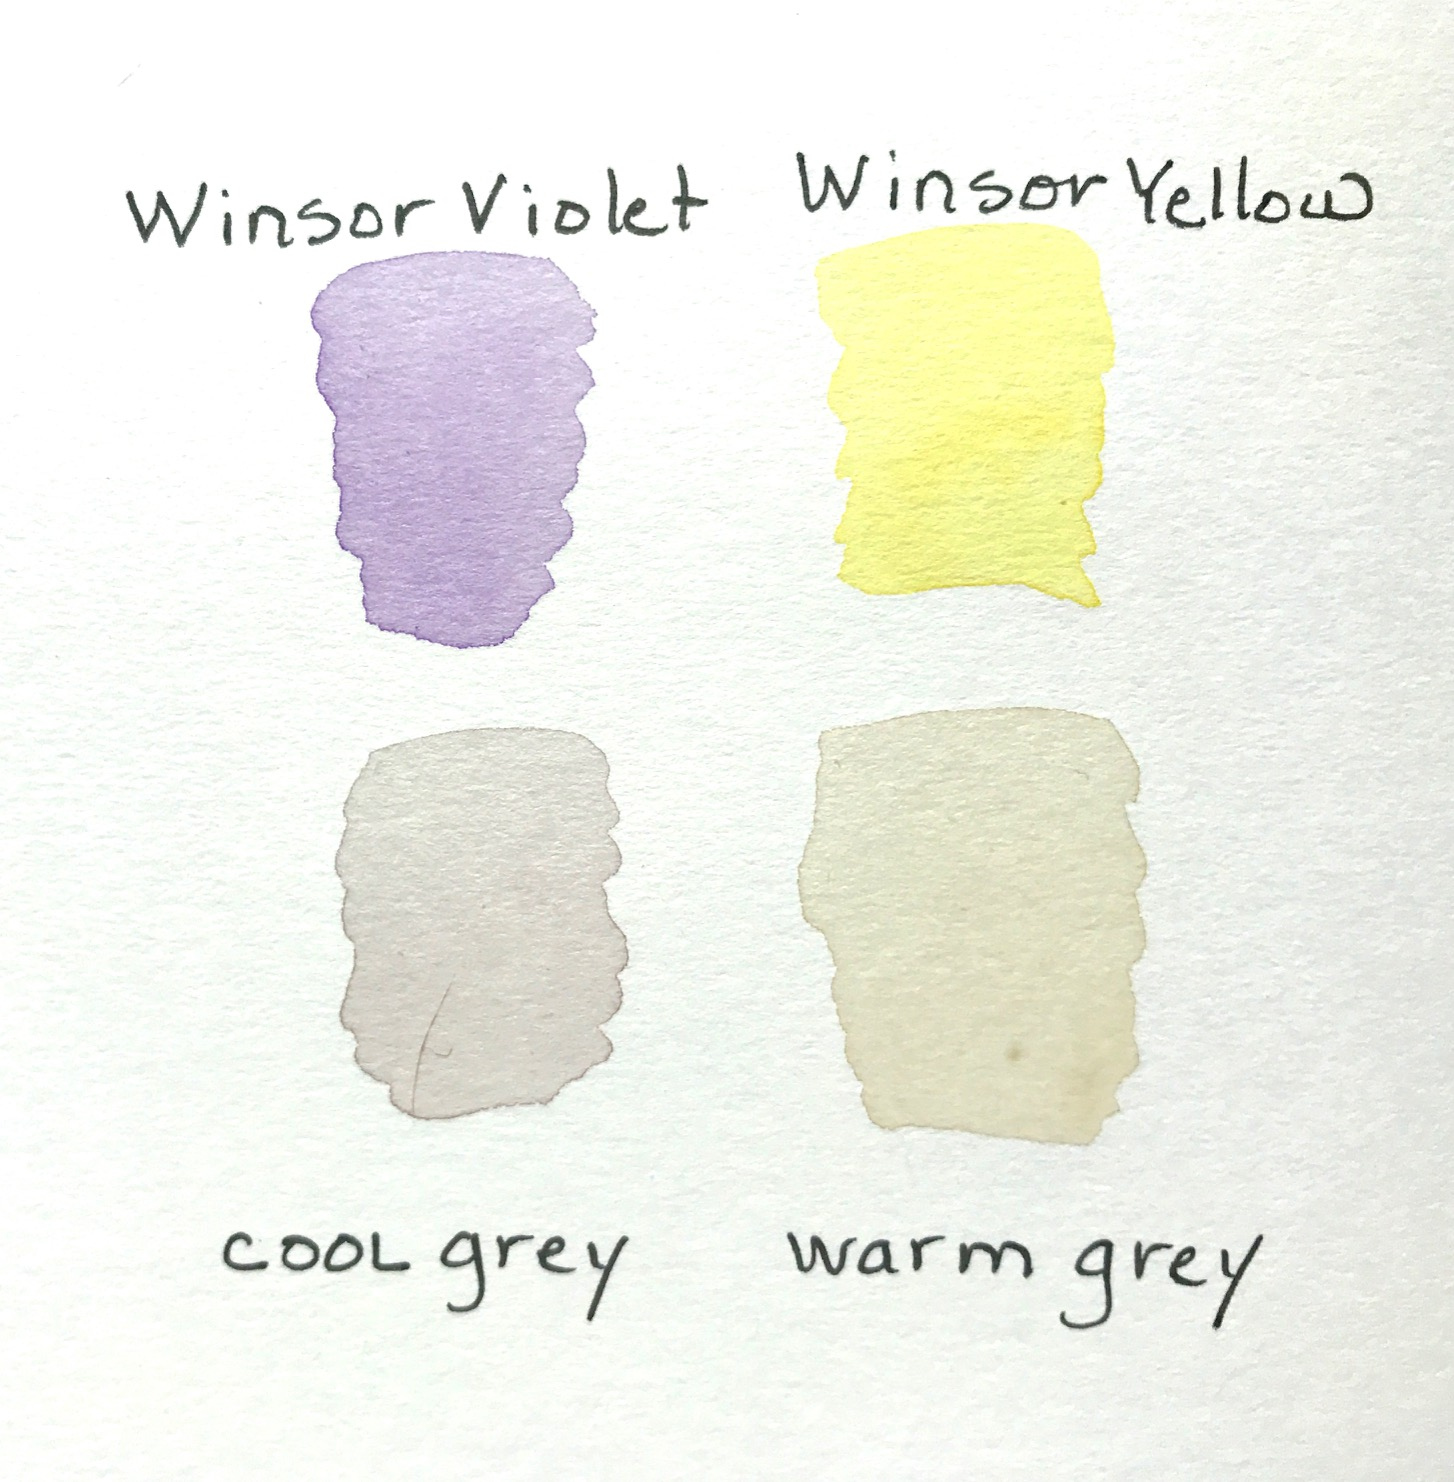 Mixing Gray from Yellow and Violet